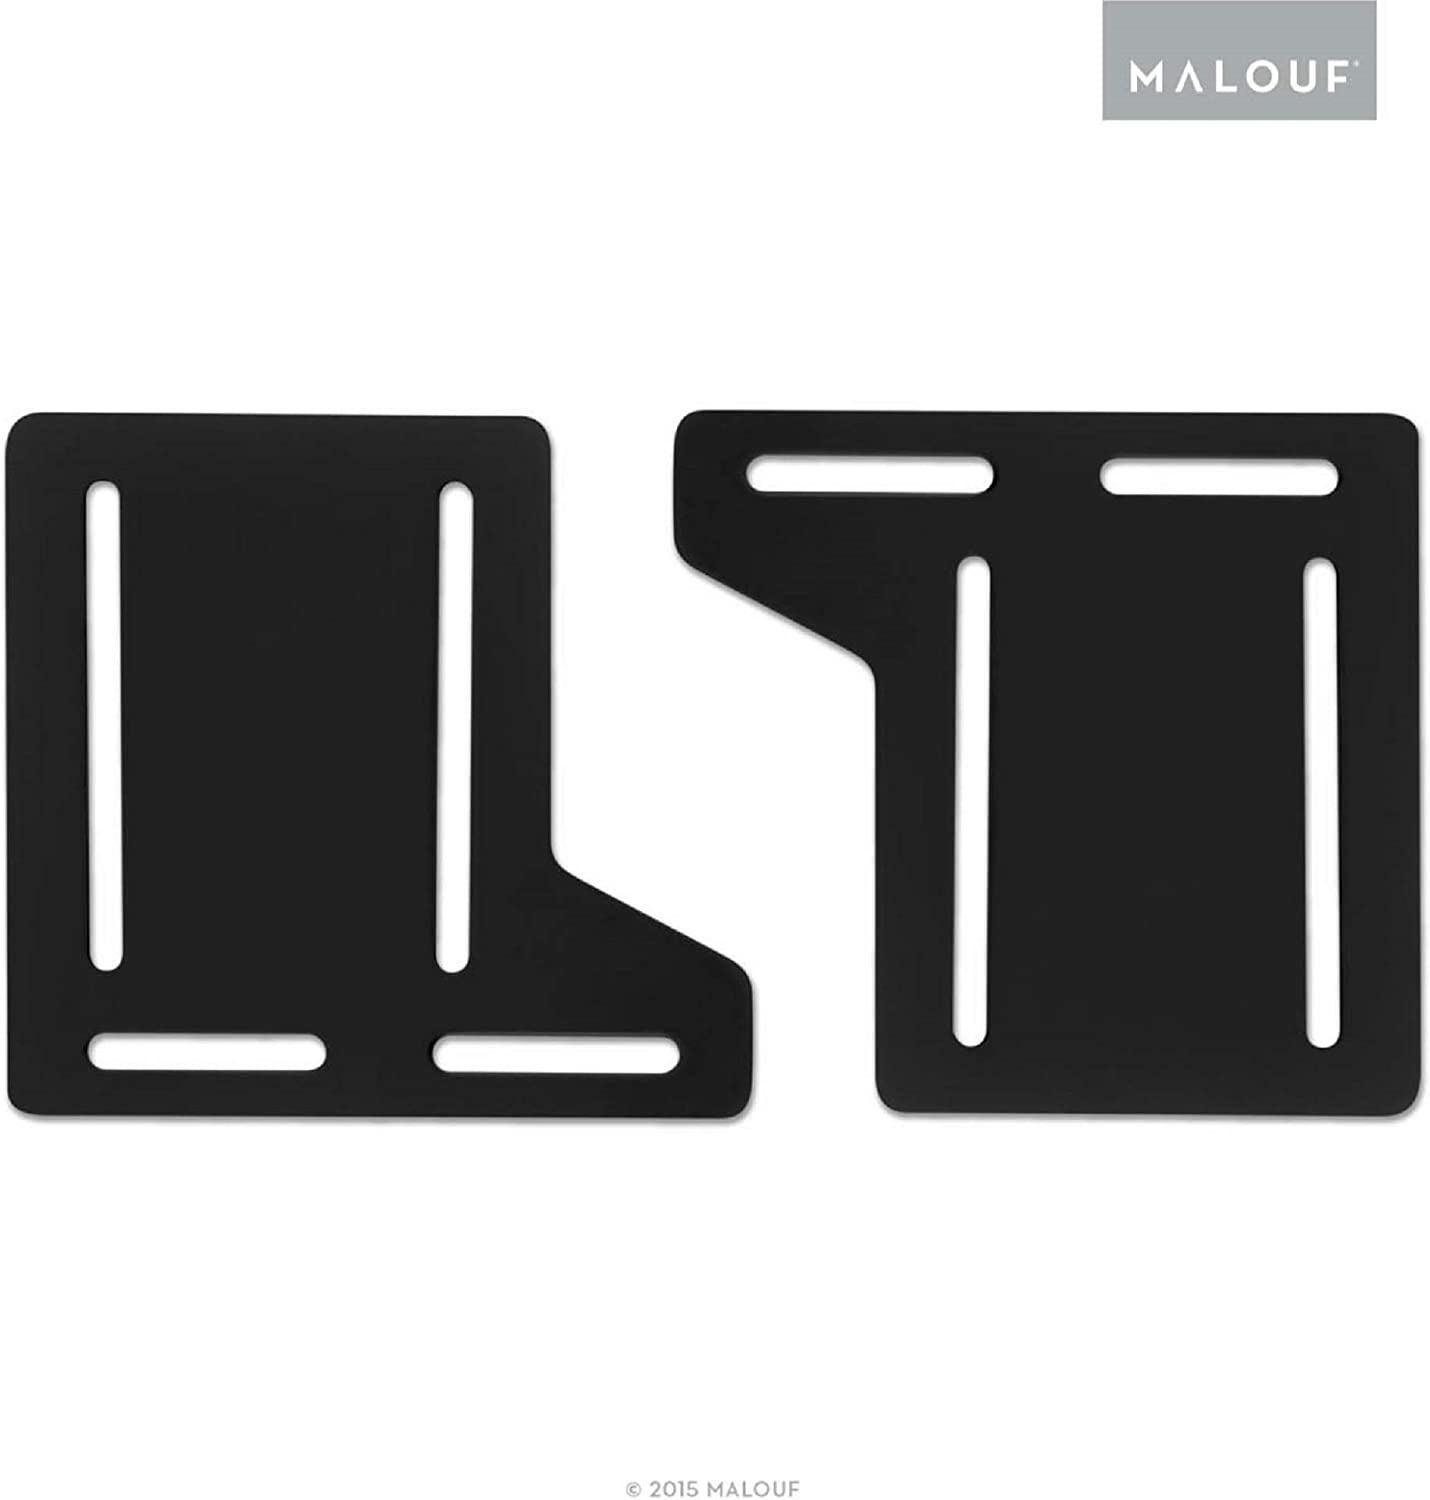 MALOUF STRUCTURES Queen Bed Frame Headboard Bracket Modification Plate Modi, Set of 2, Black